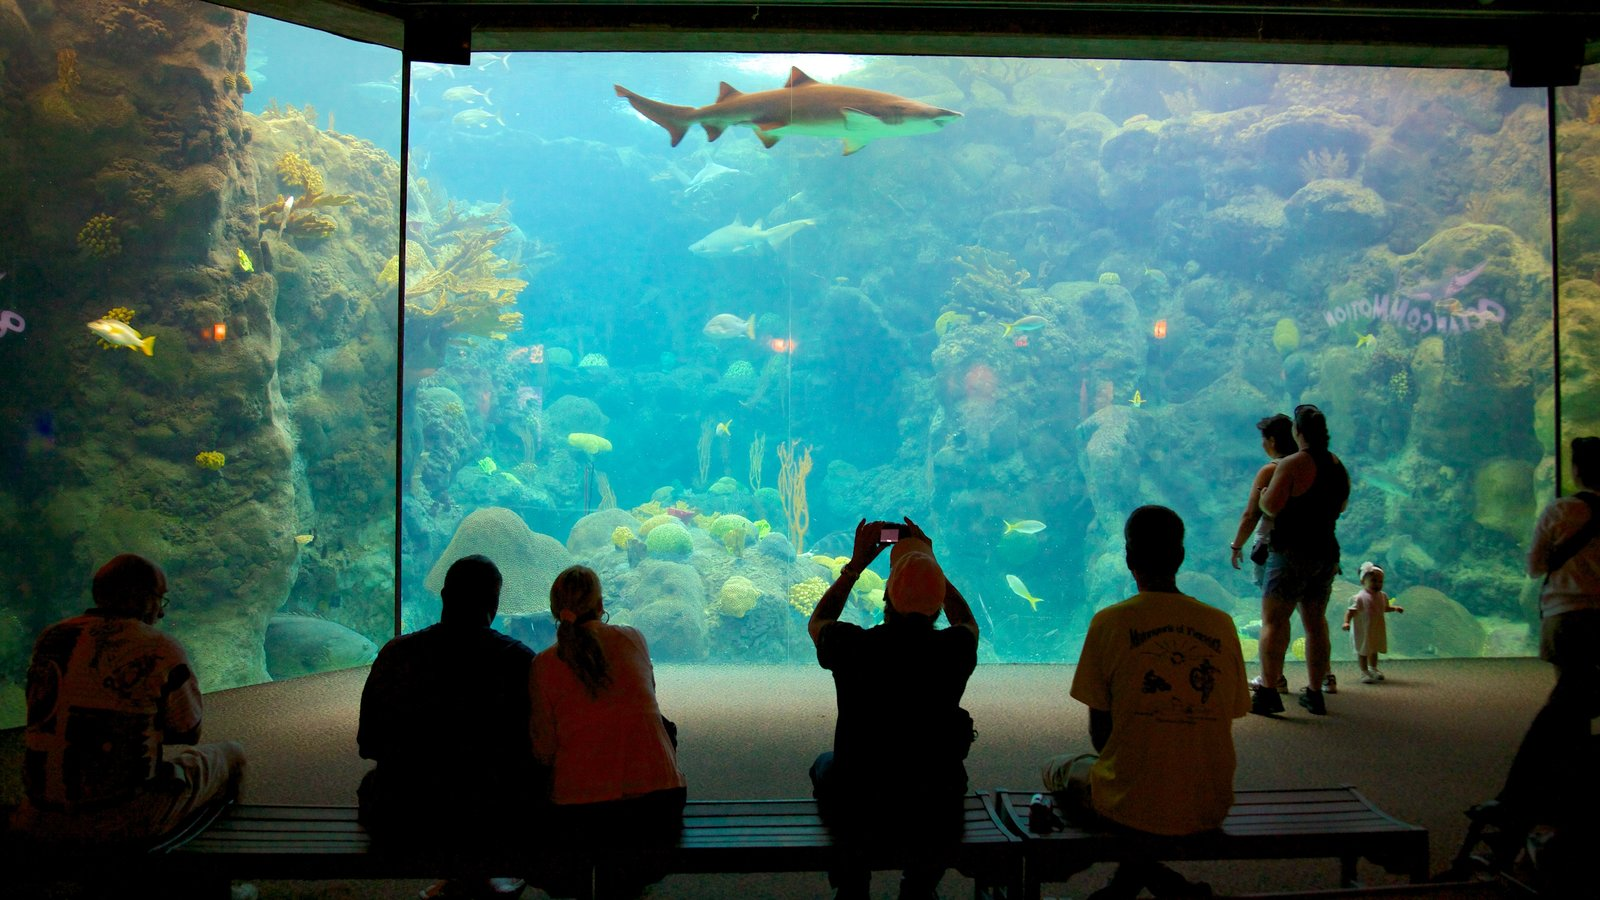 Florida Aquarium showing marine life, modern architecture and interior views